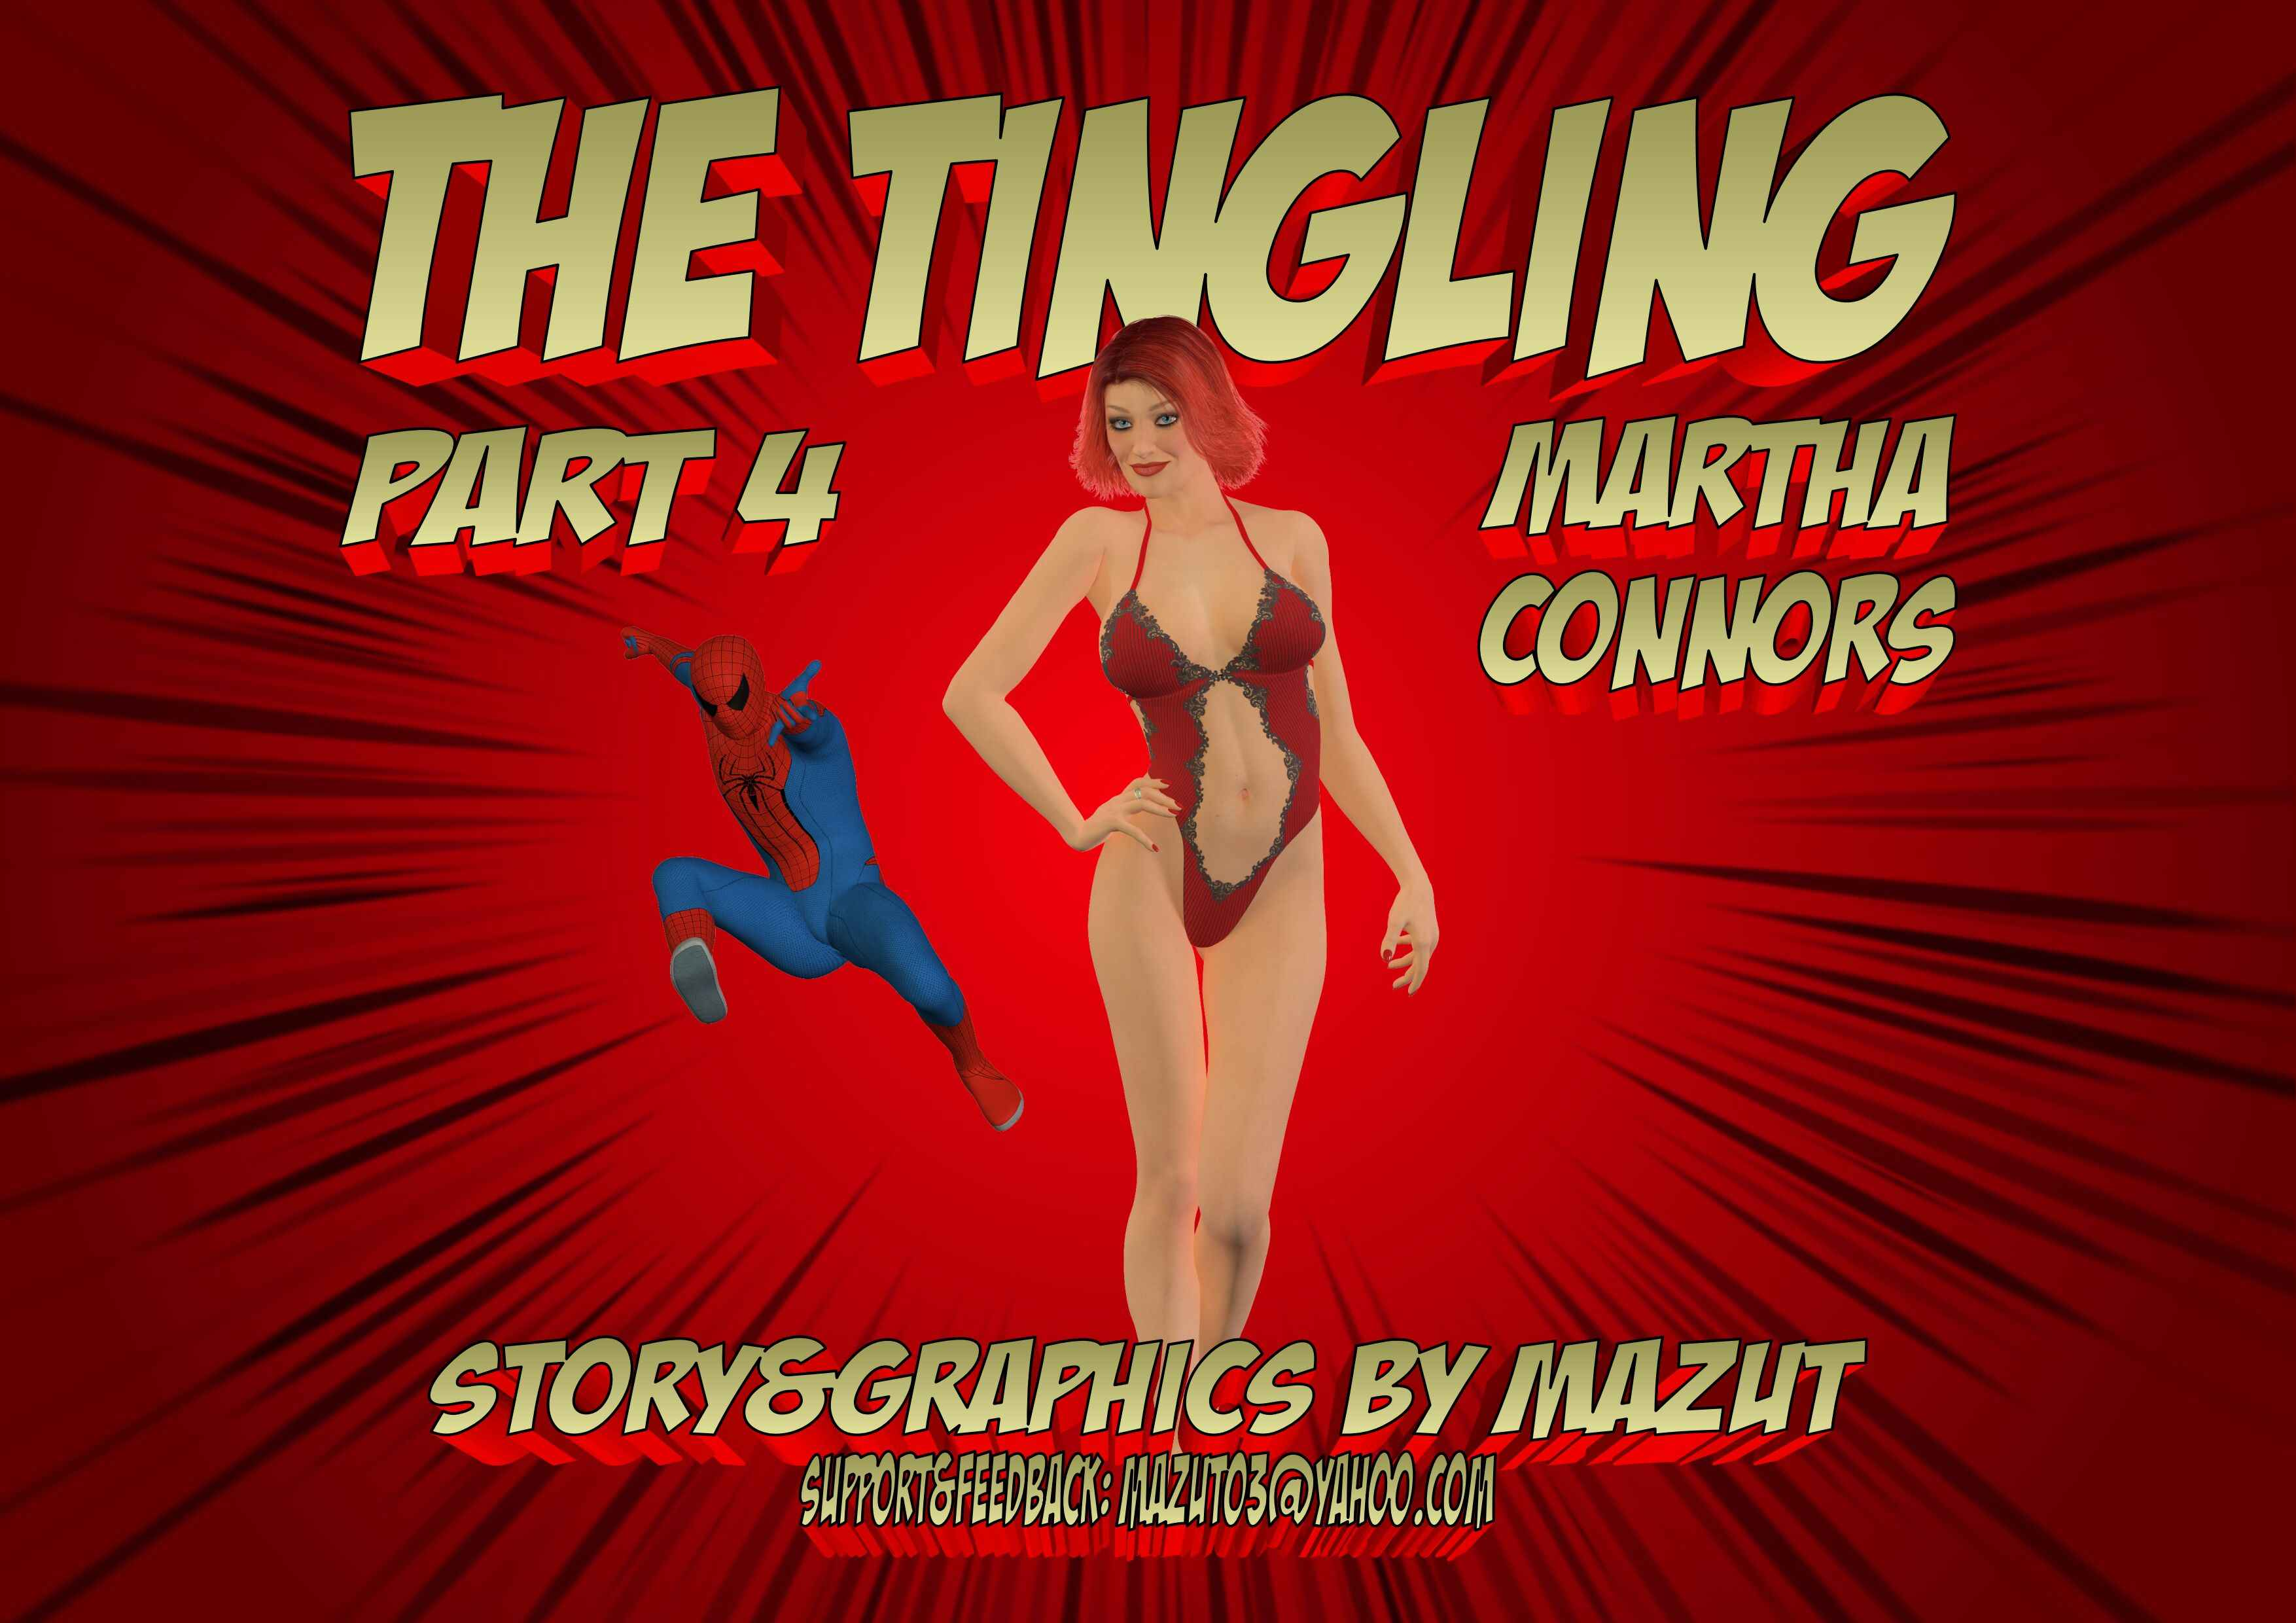 Mazut-The Tingling part 4